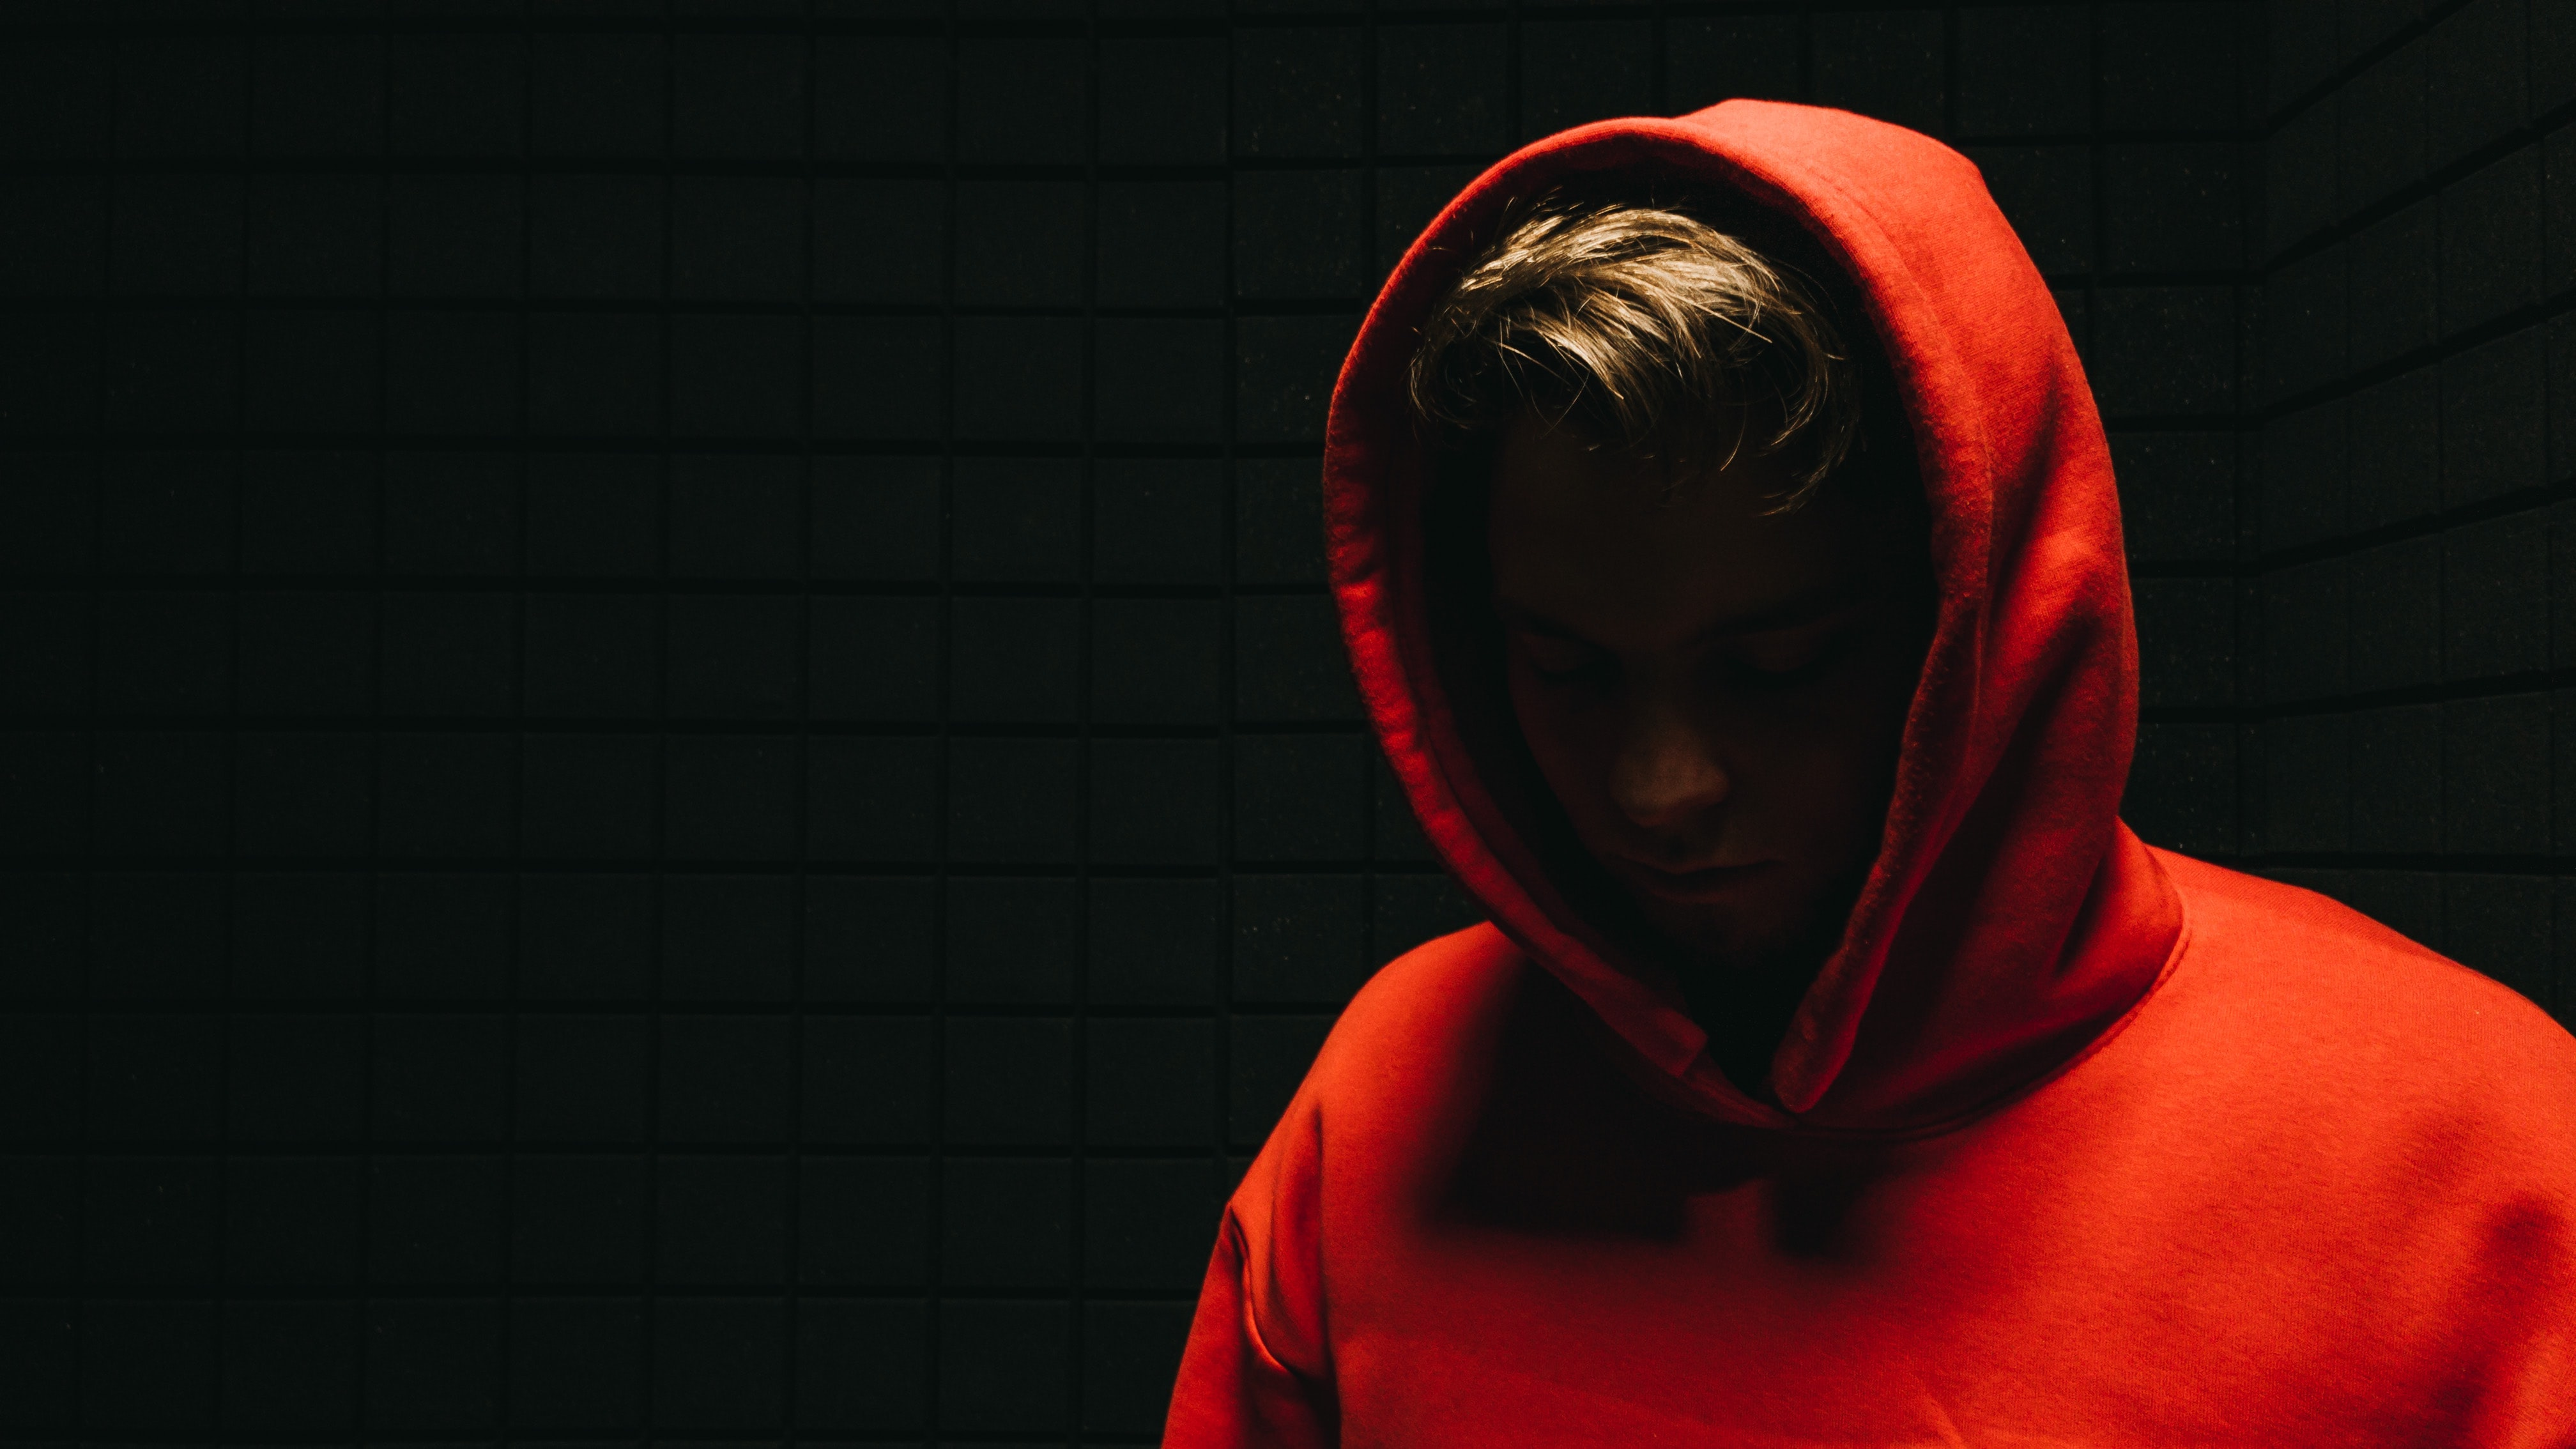 Male in a red hoodie